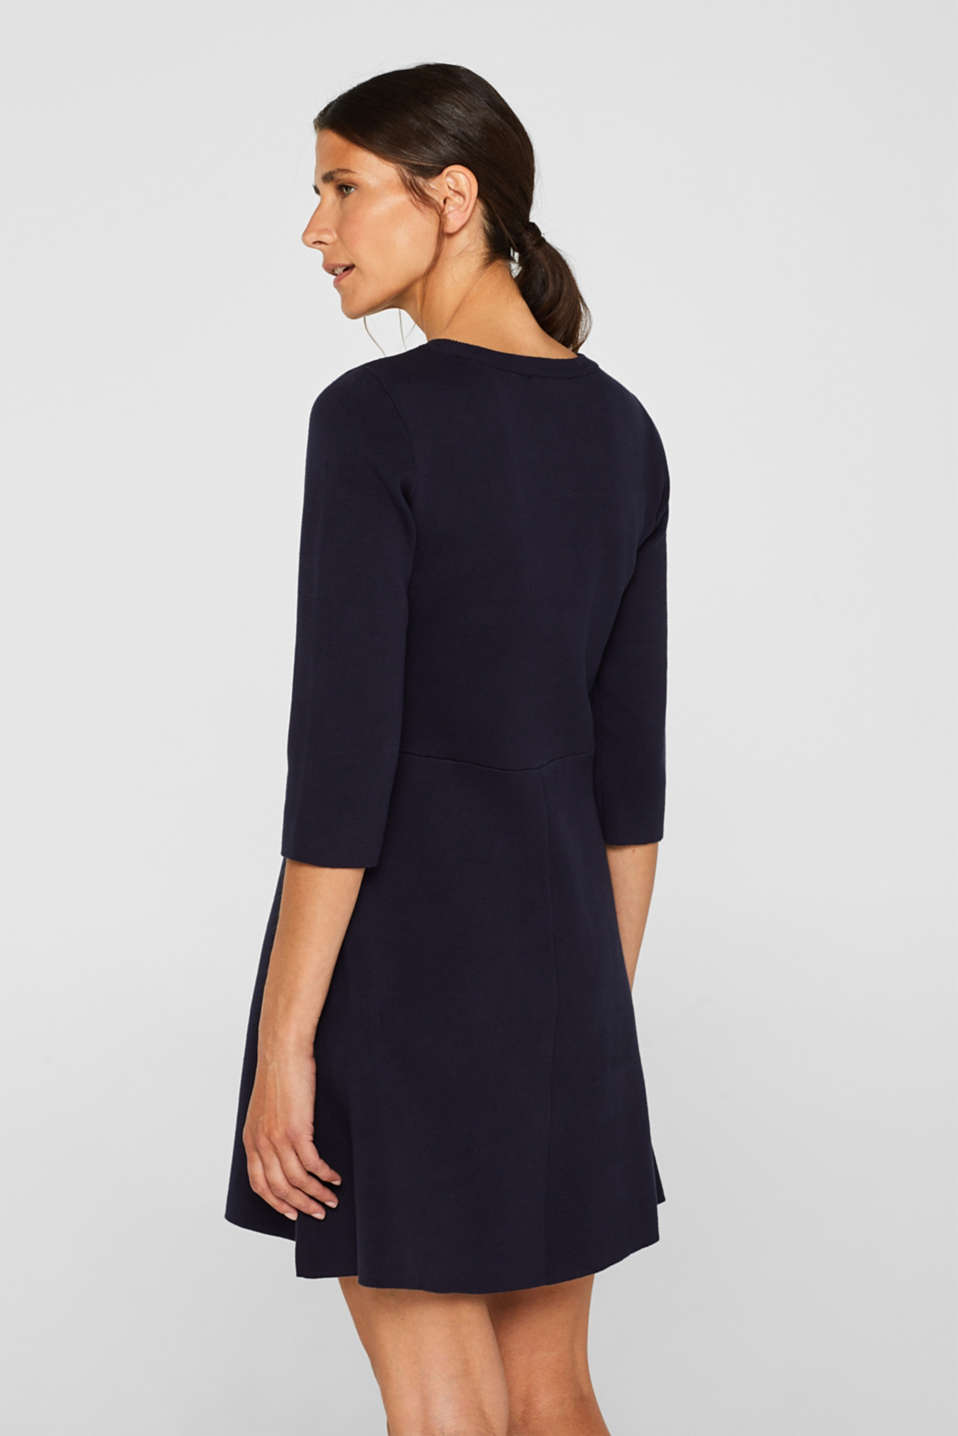 Compact knit dress in an A-line silhouette, NAVY, detail image number 2